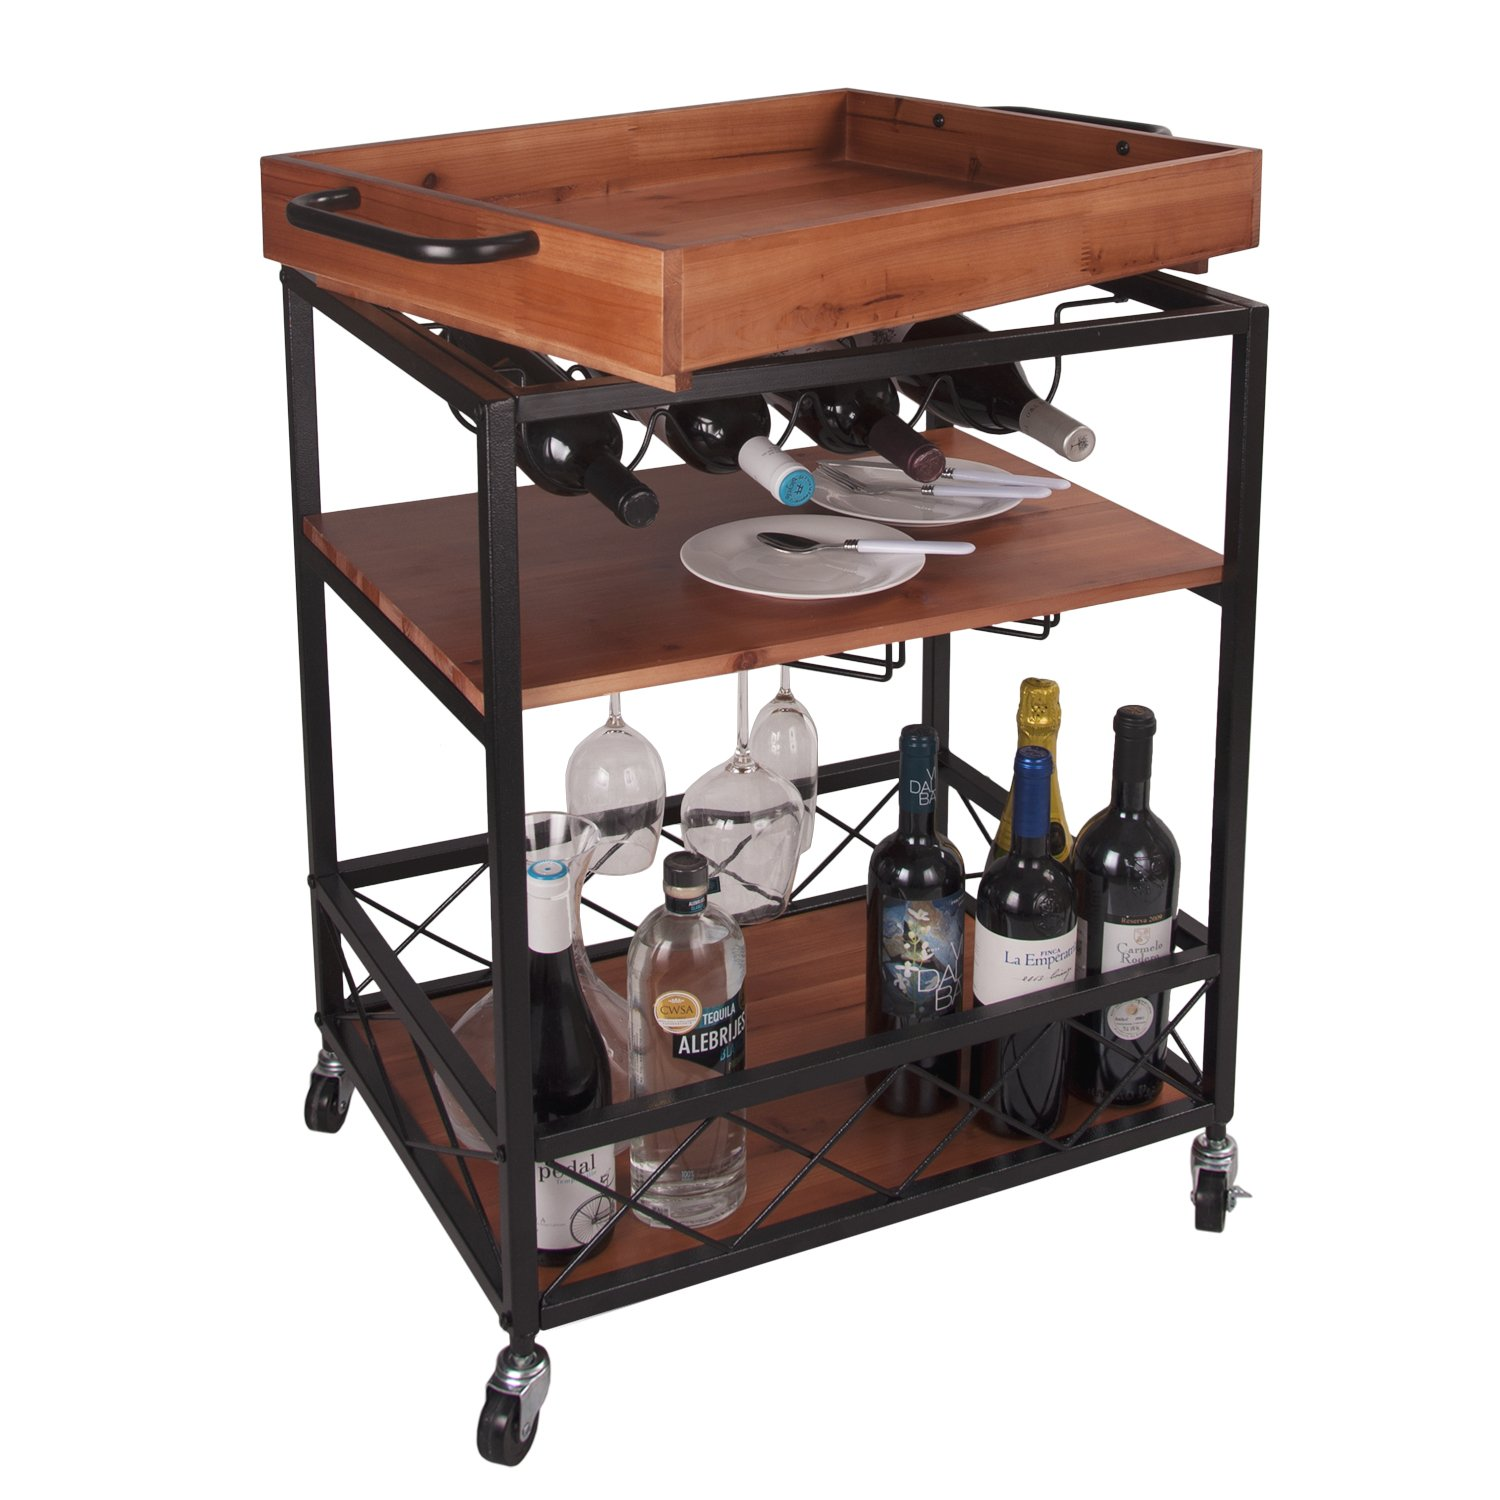 LEVE 24''x18'' Solid Wood Kitchen Serving Cart Bar Buffet Cart 3 Tiers with Bottle and Goblet Holder